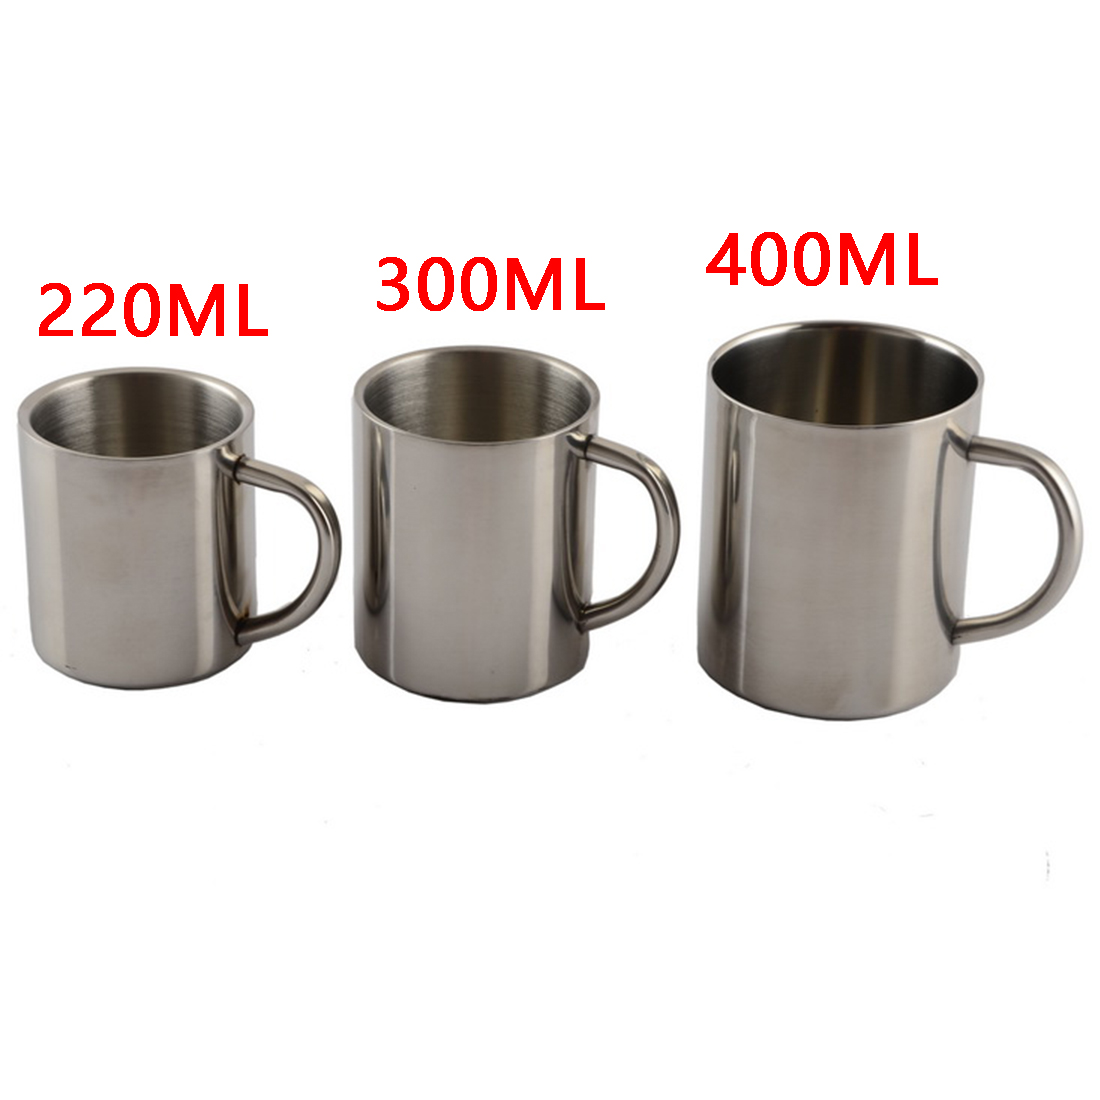 Pet 400ml Portable Filter Travel Cups Drinking Bowls Dog: Hot Sale 1pcs New 220ml 300ml 400ml Stainless Steel